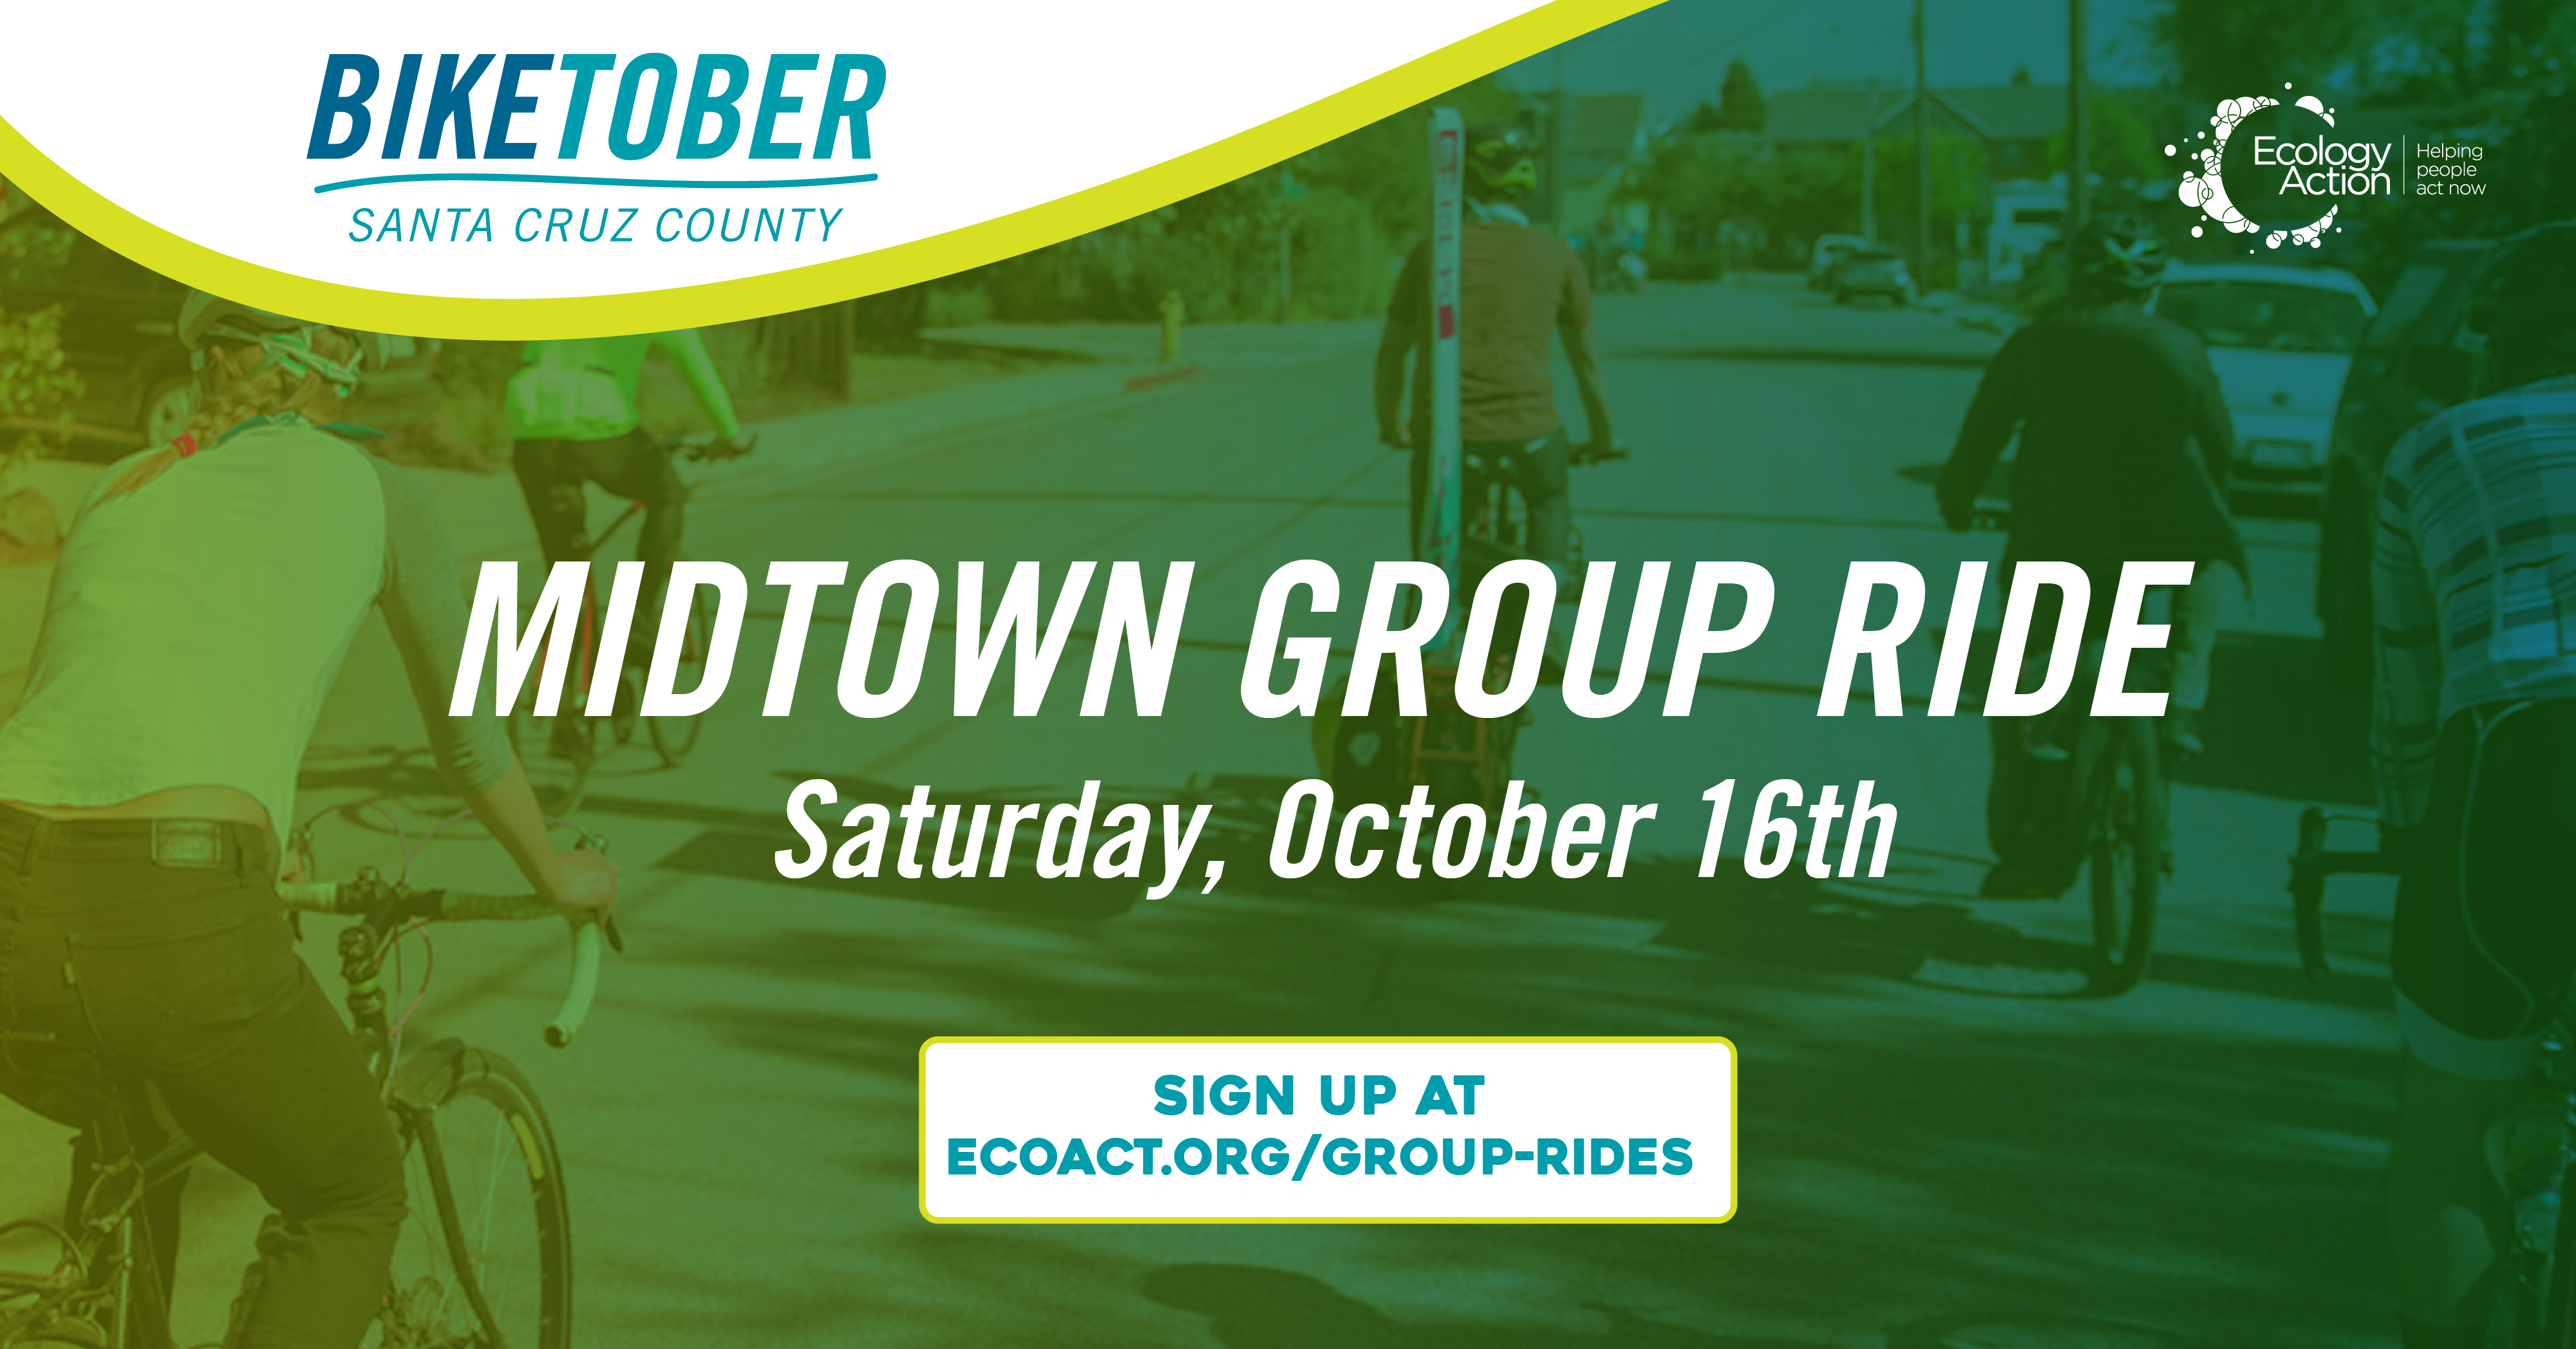 Biketober Santa Cruz County social media post with a community of bike riders with helmets on and the image has a green blue overlay theme. Text reads 'Midtown group ride Saturday, October 16th'.